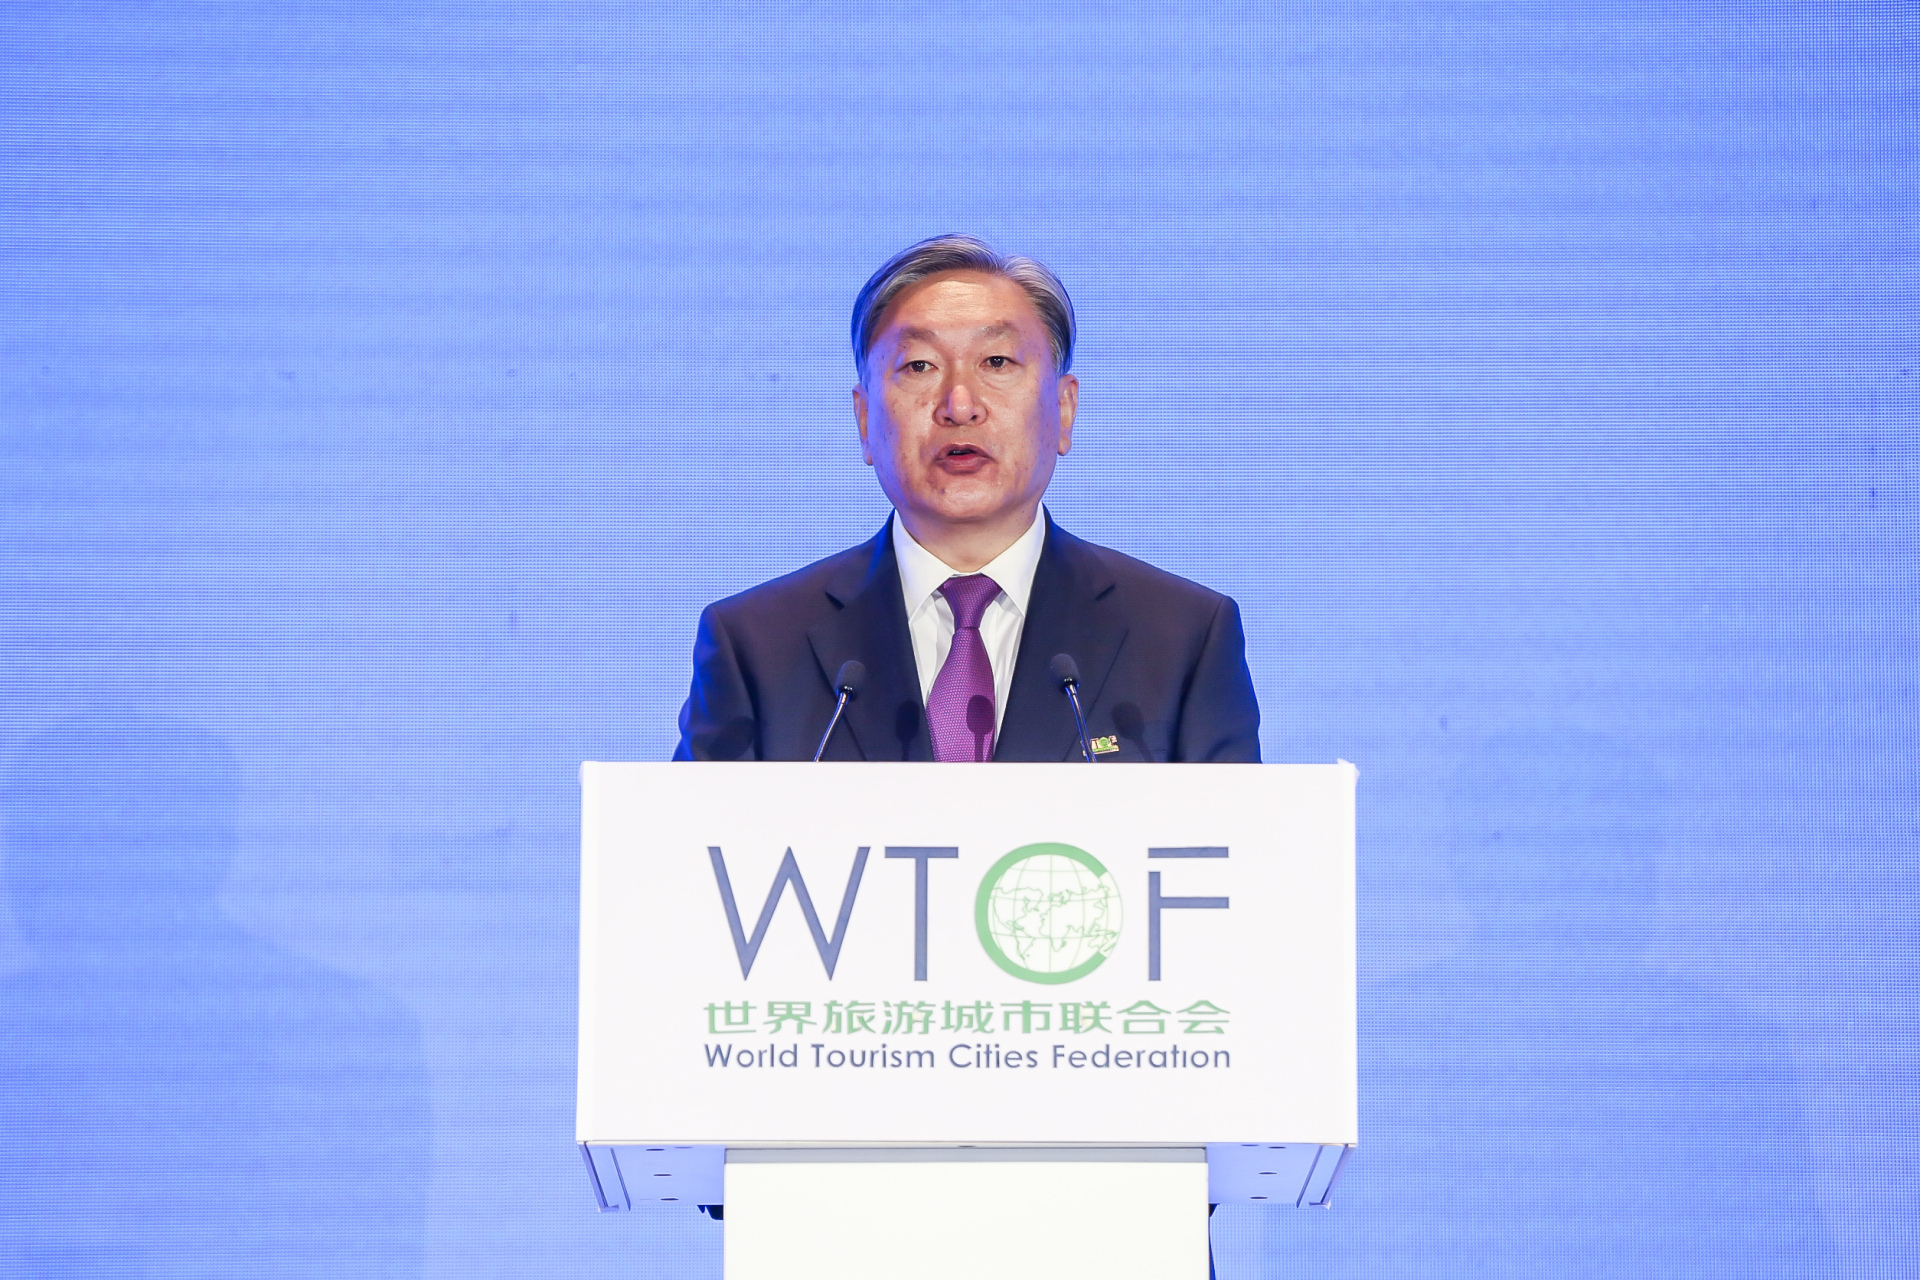 Chen Dong, Secretary-General of World Tourism Cities Federation (WTCF) and  General-Director of Beijing Municipal Bureau of Culture and Tourism, releases Action Guide on Recovery and Revitalization of City Tourism amid COVID-19.